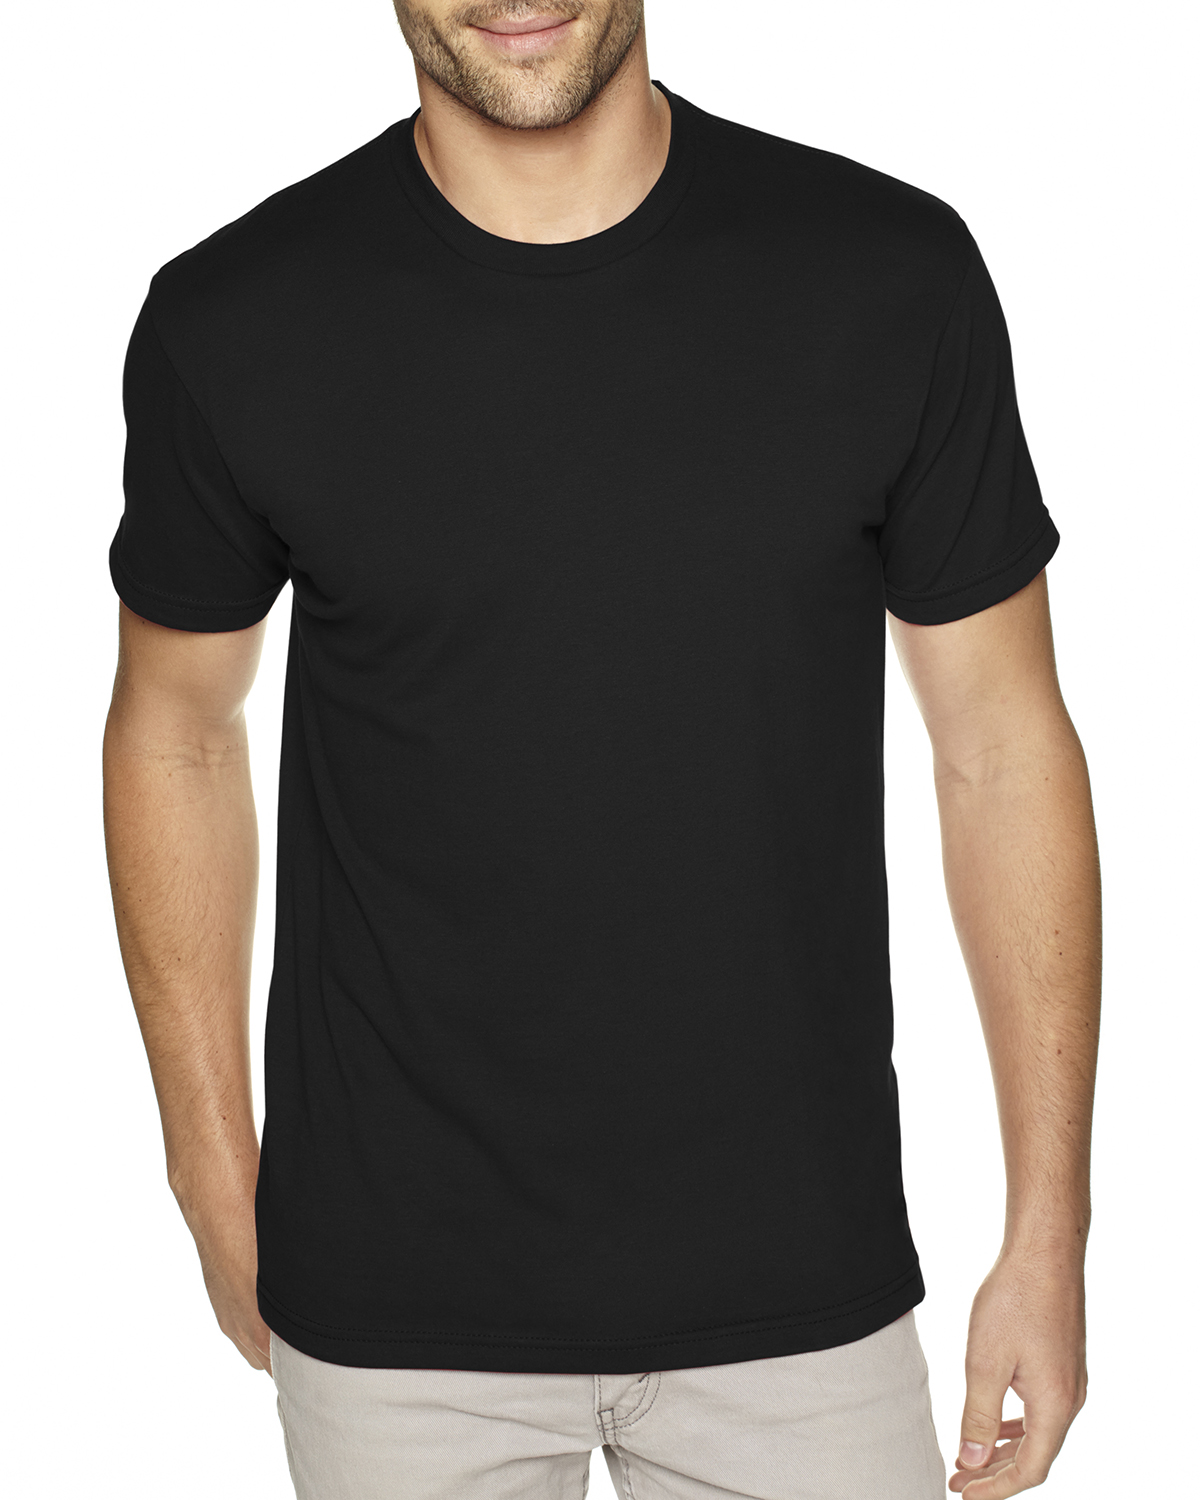 Next Level - 6410 Men's Premium Sueded Crew $5.51 - Women's T-Shirts